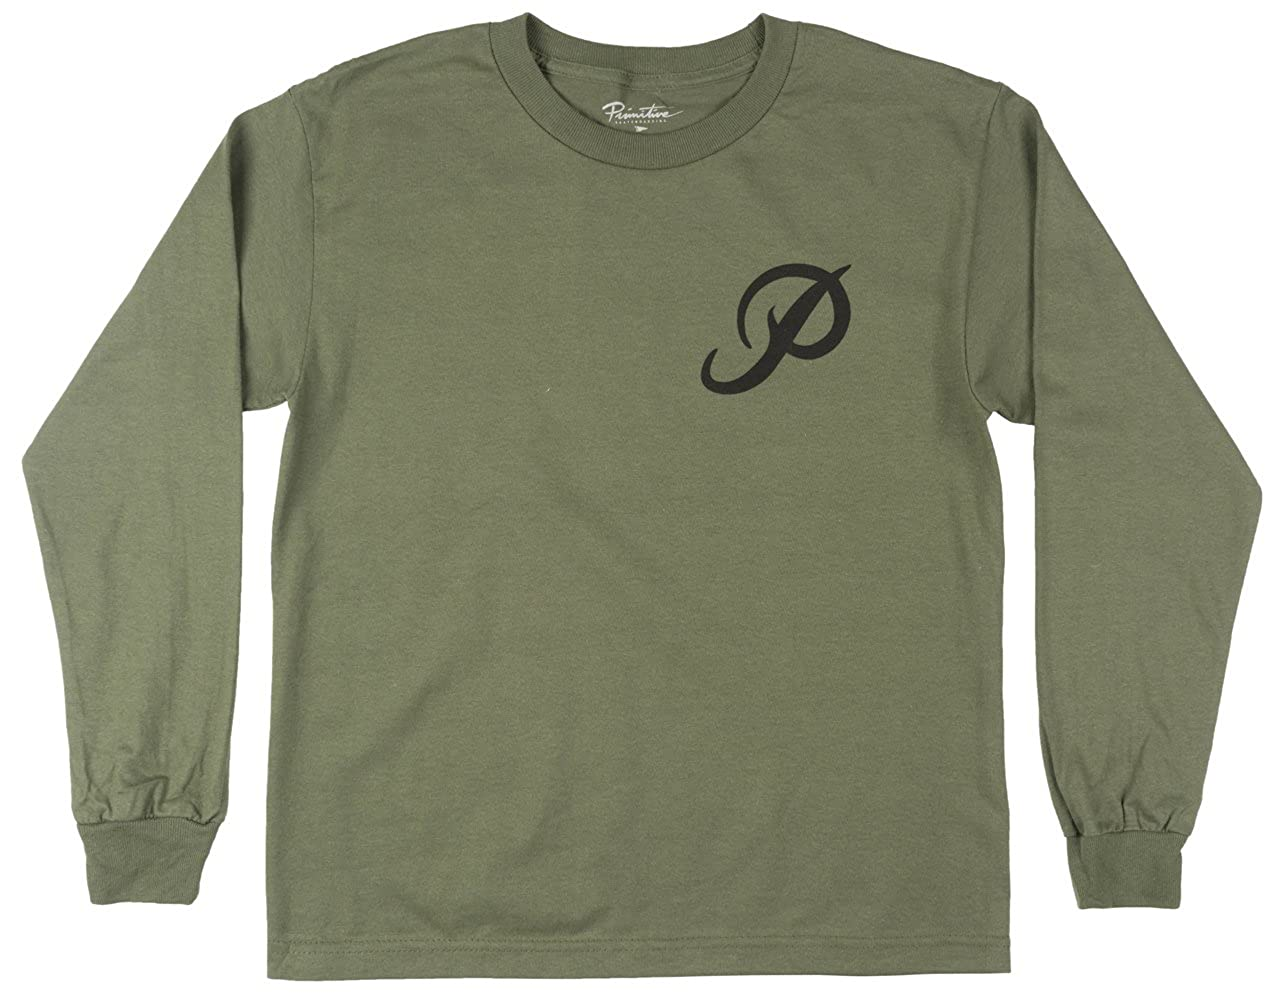 a2cca15a Amazon.com: Primitive Boys Apparel Classic P Long Sleeve Shirt Olive Kids  L: Clothing